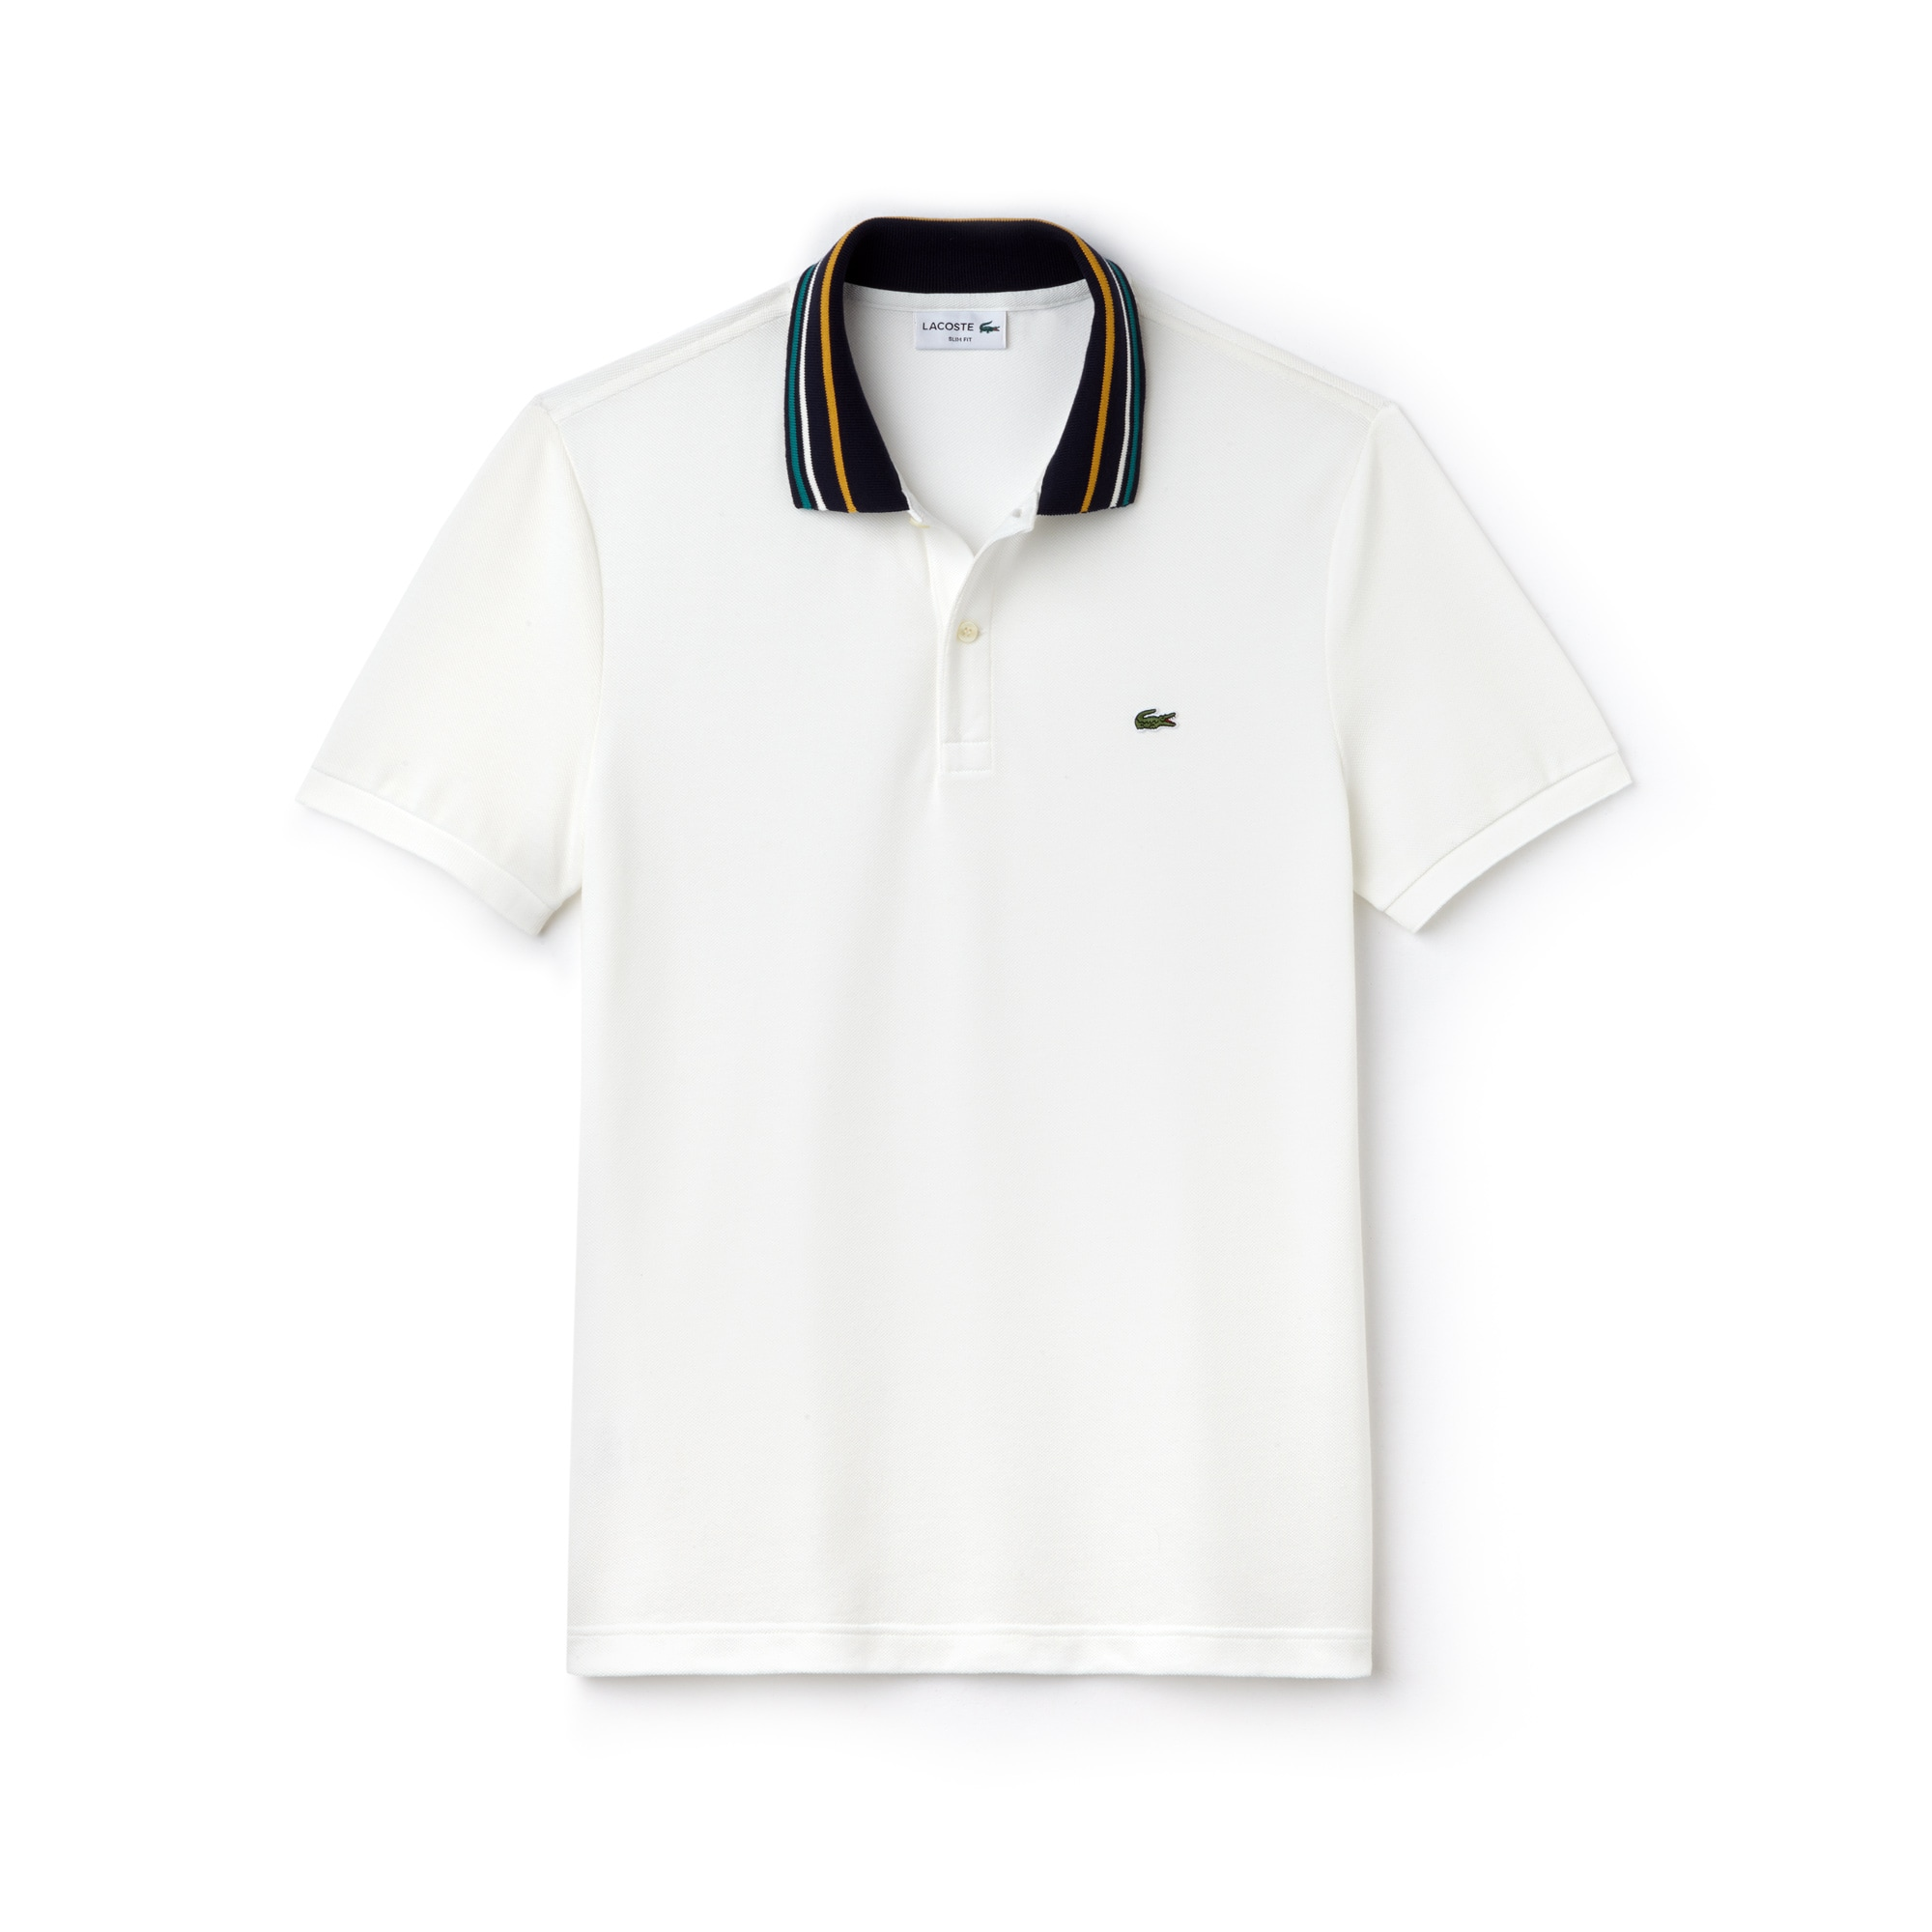 Men's Slim Fit Striped Contrast Collar Petit Piqué Polo